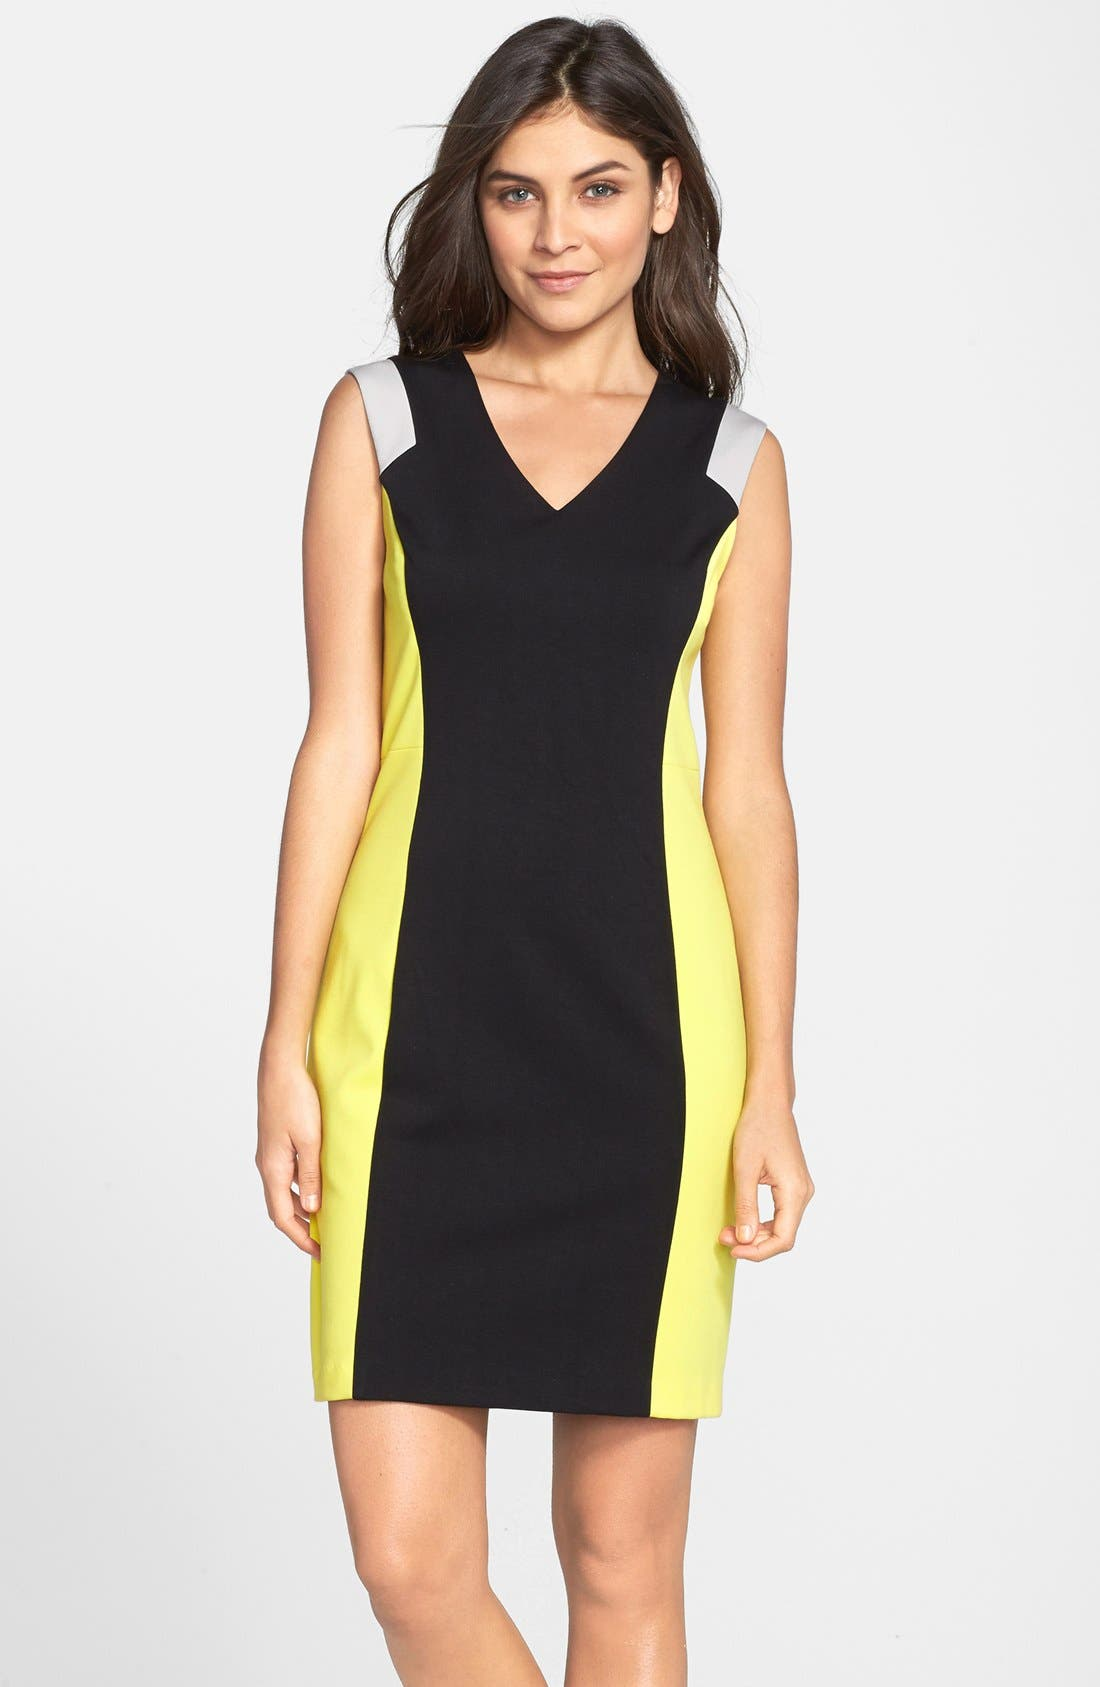 Marc new york by andrew marc color block sheath dress